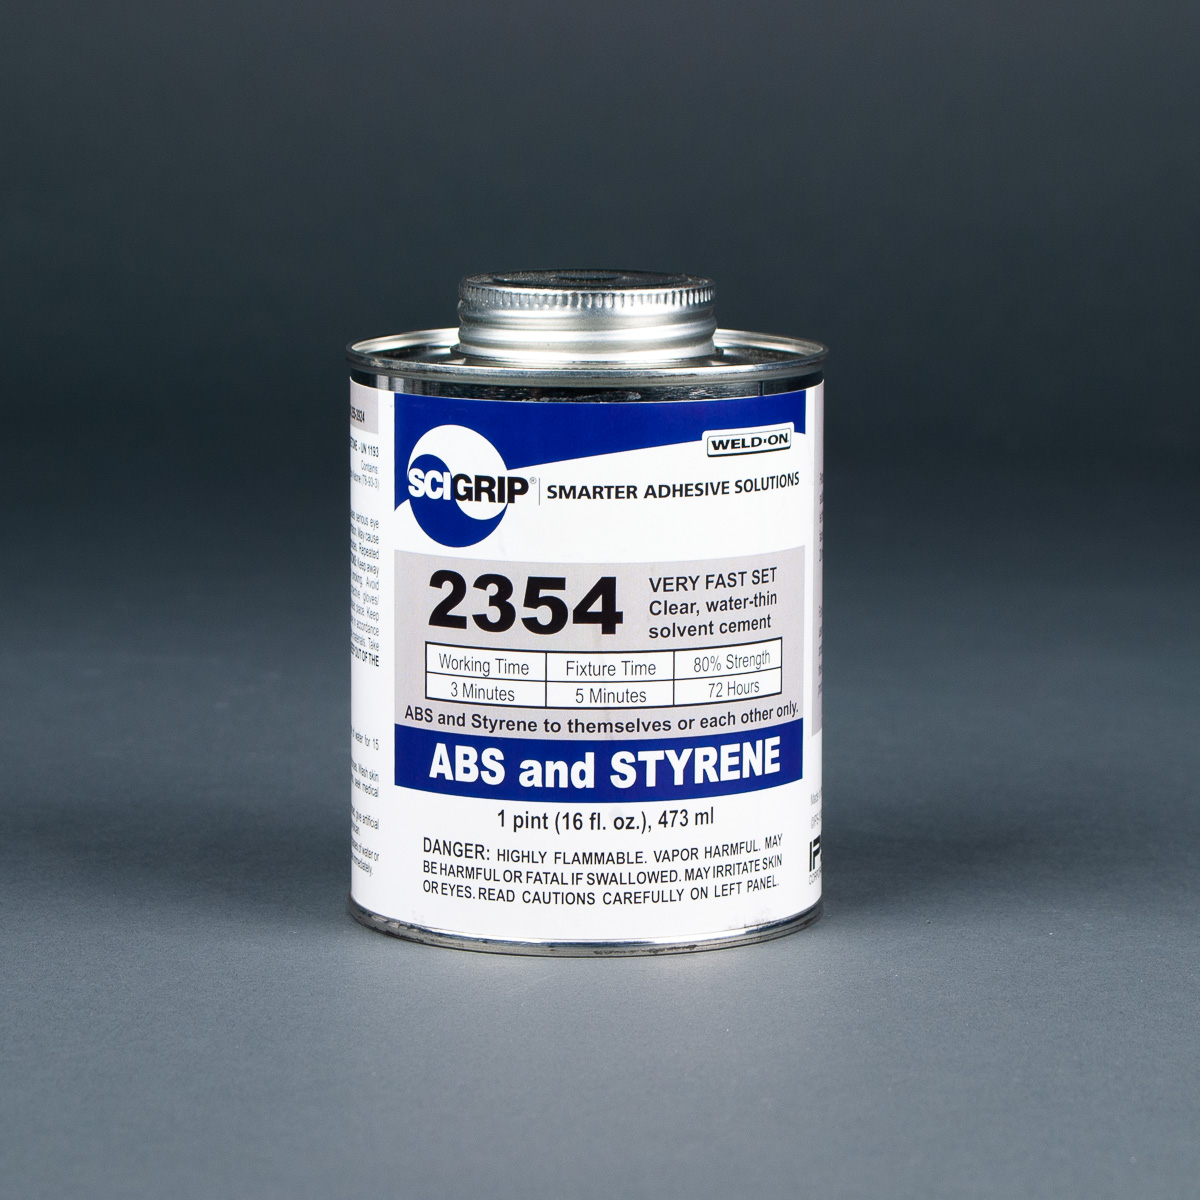 Weld-On ABS and Styrene Solvent Cement 1pt